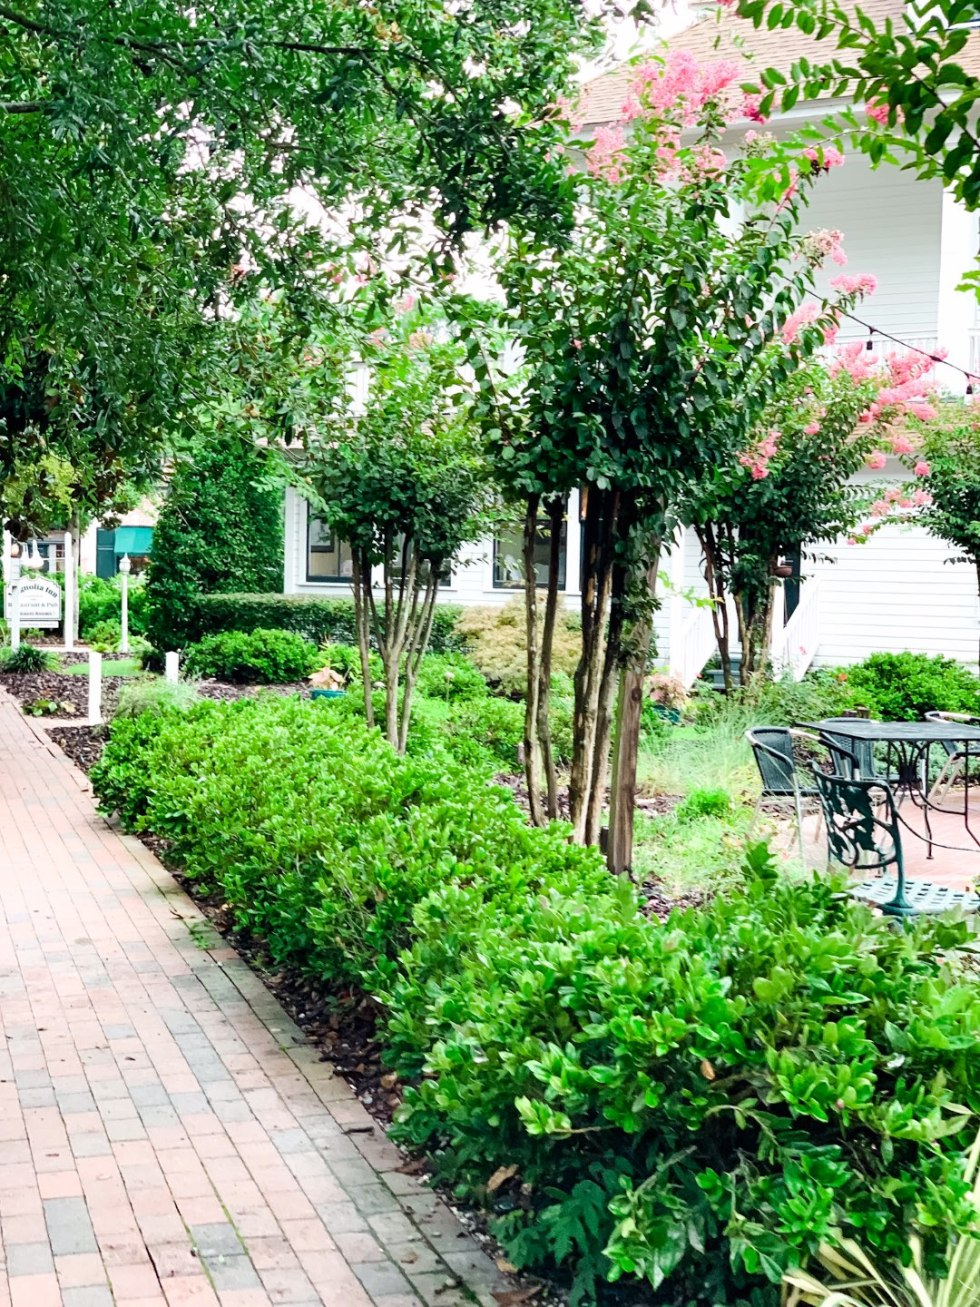 Top 10 Best Things to Do in Pinehurst NC: a Complete Travel Guide - I'm Fixin' To - @mbg0112